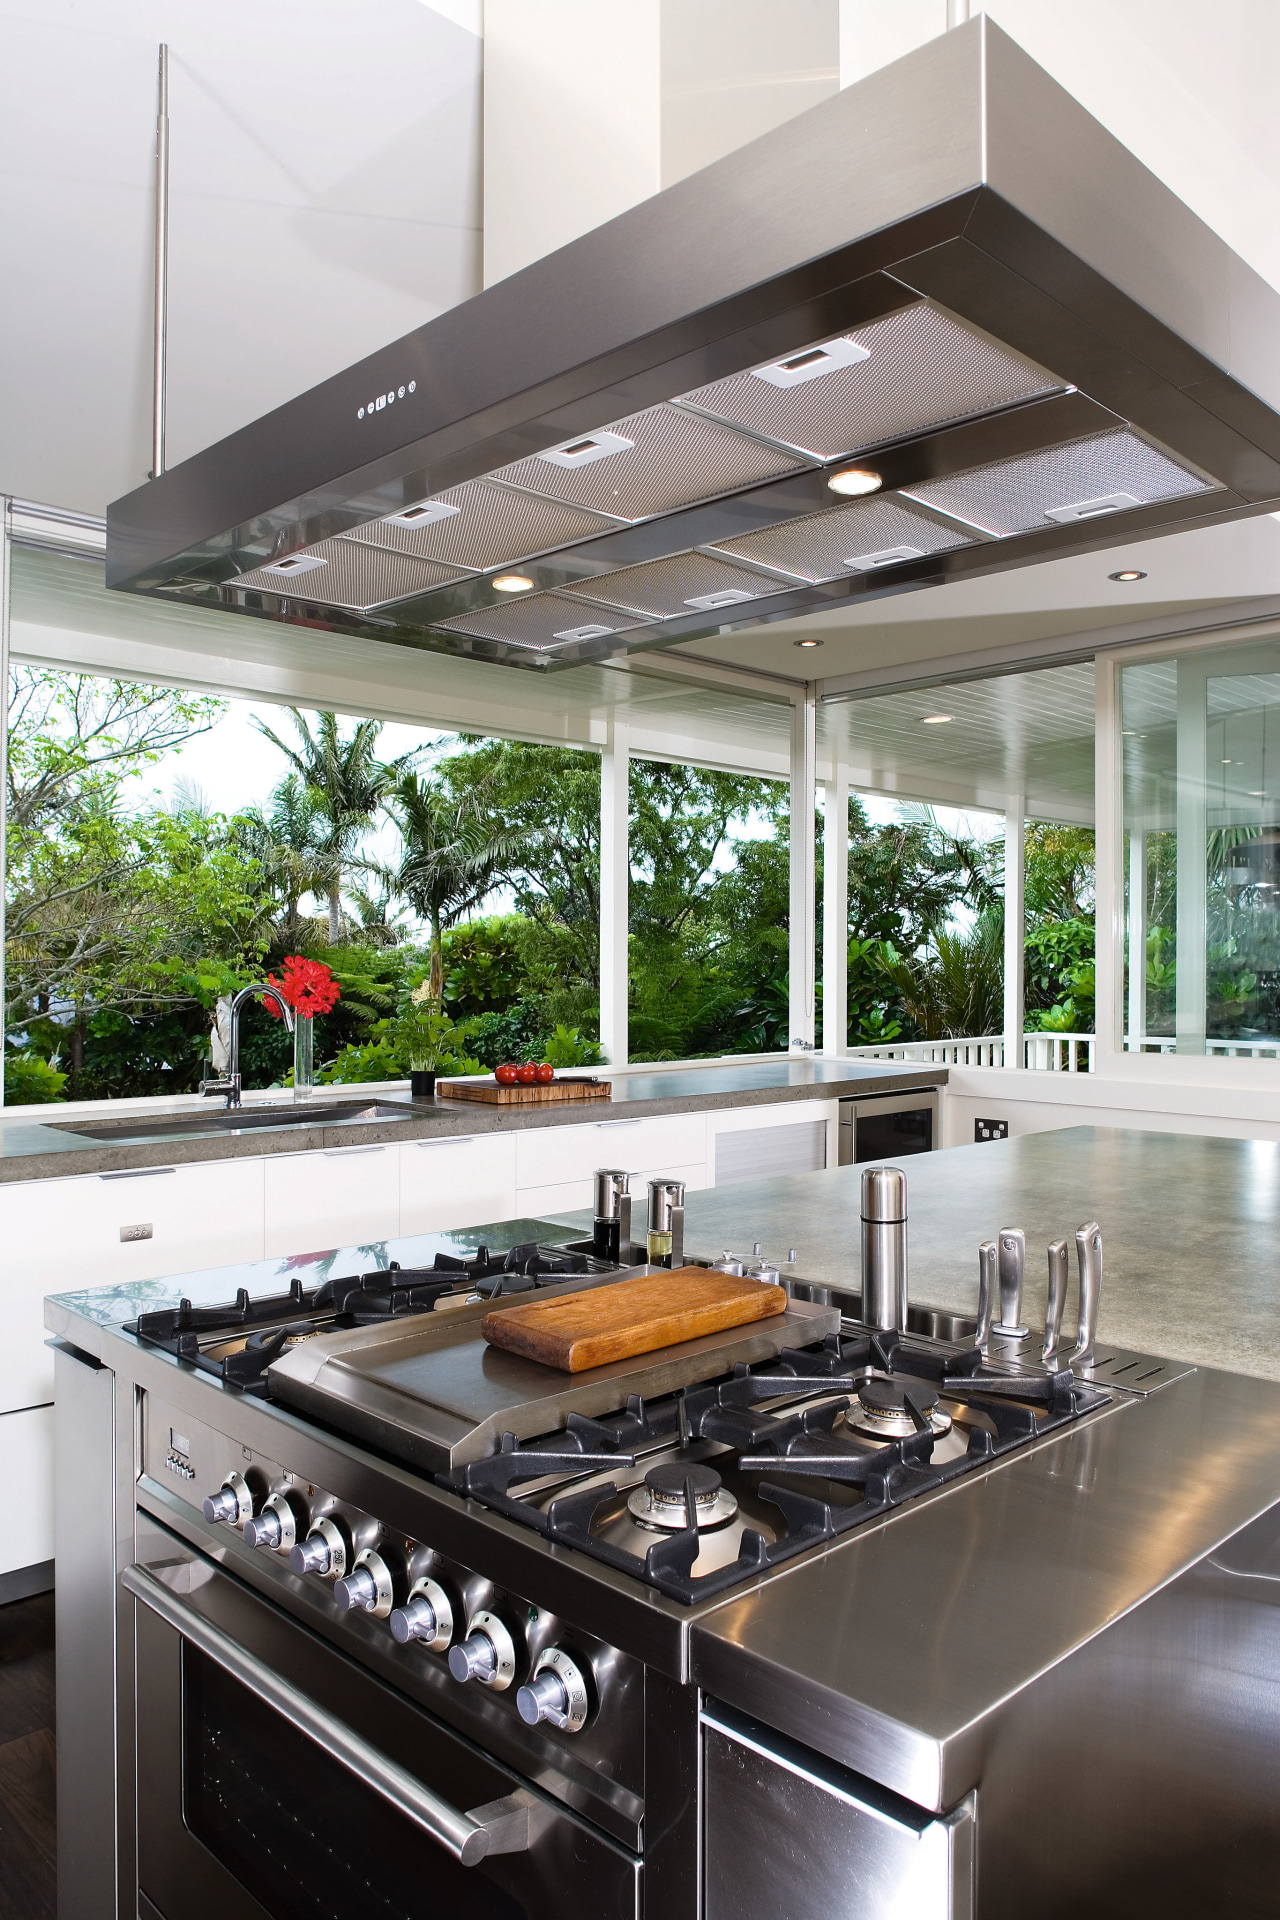 A close up view of the cooktop and countertop, interior design, kitchen, white, gray